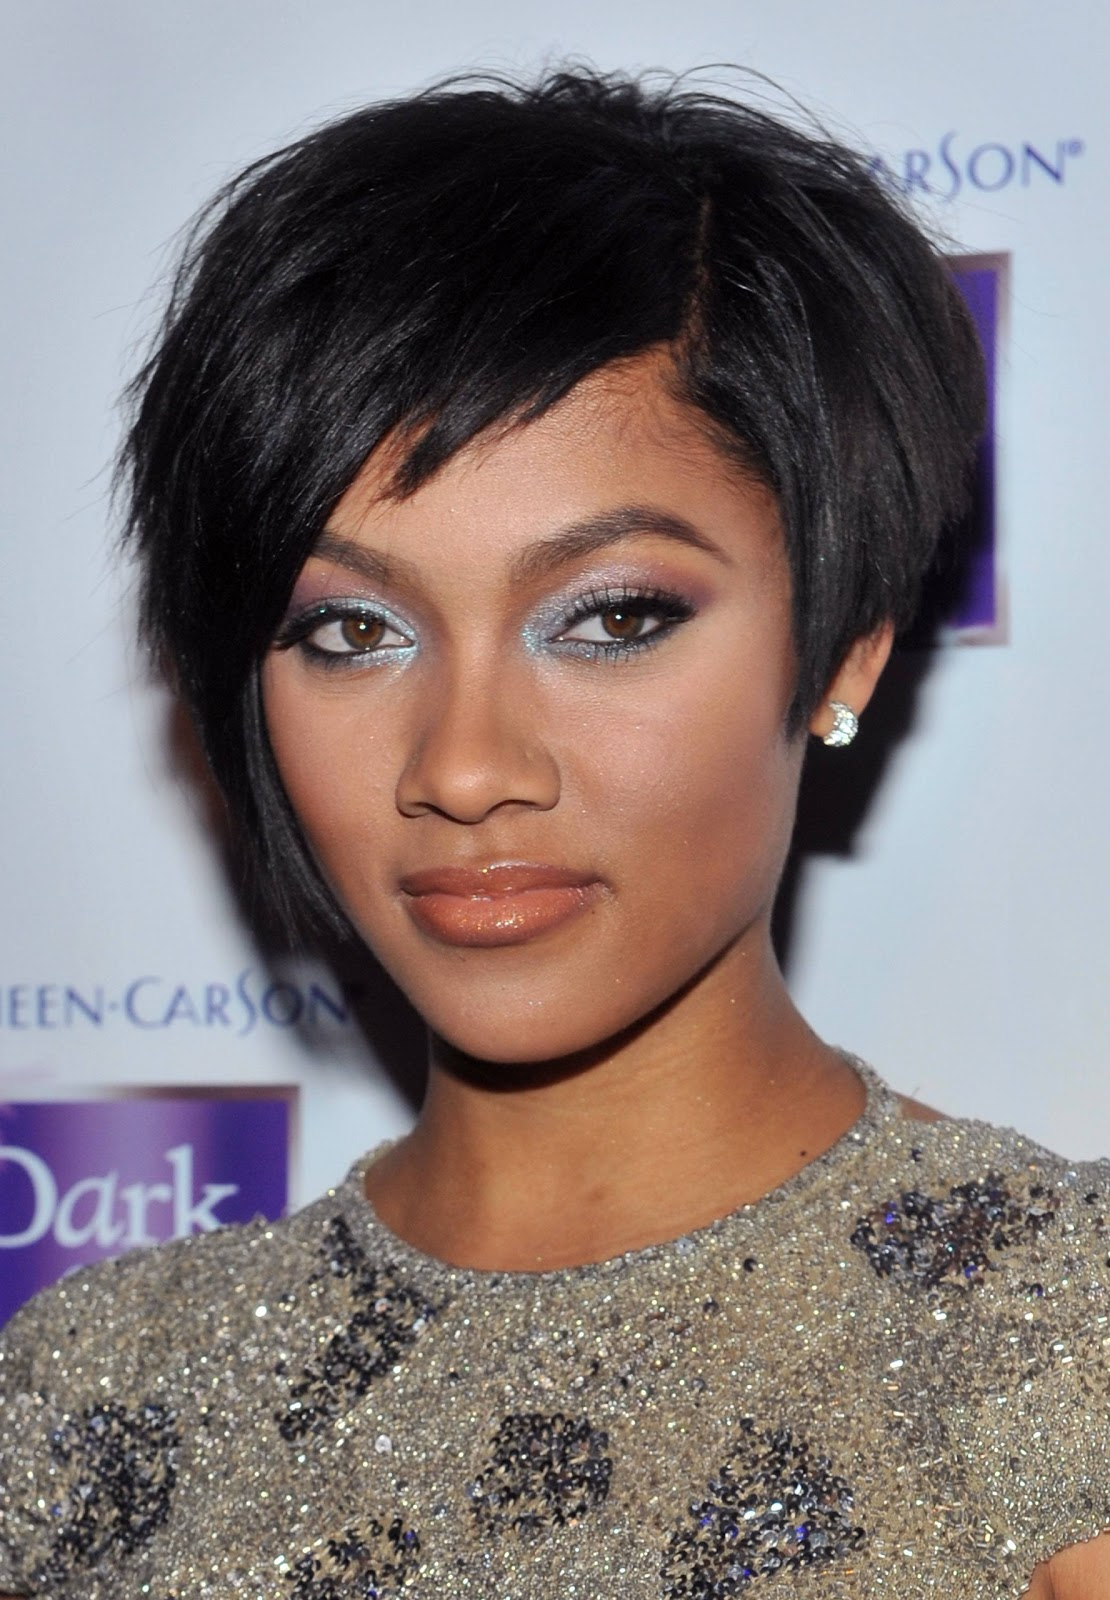 Hairstyles: Short Black Hair Cuts